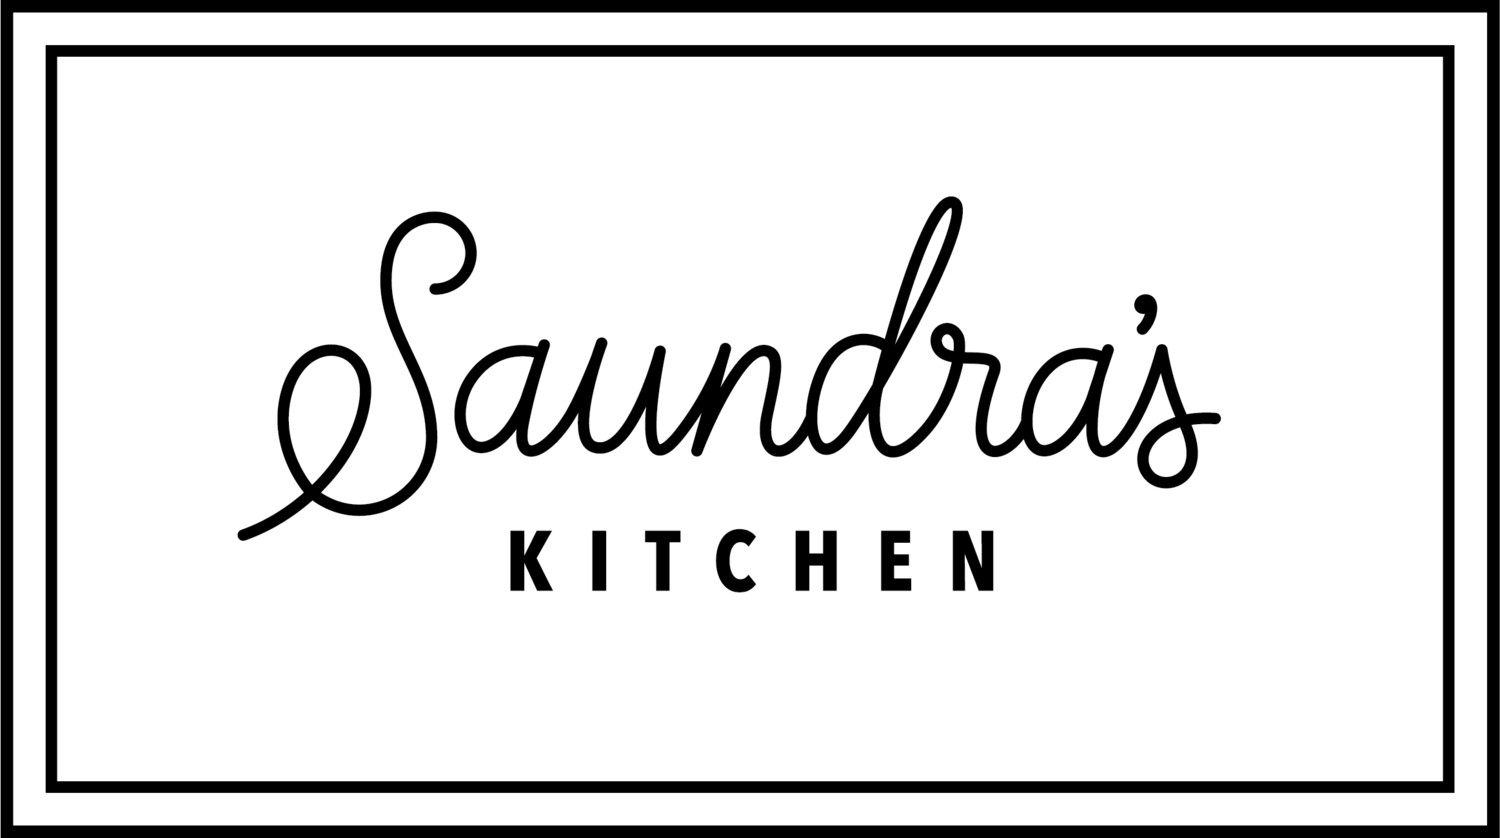 Saundra's Kitchen